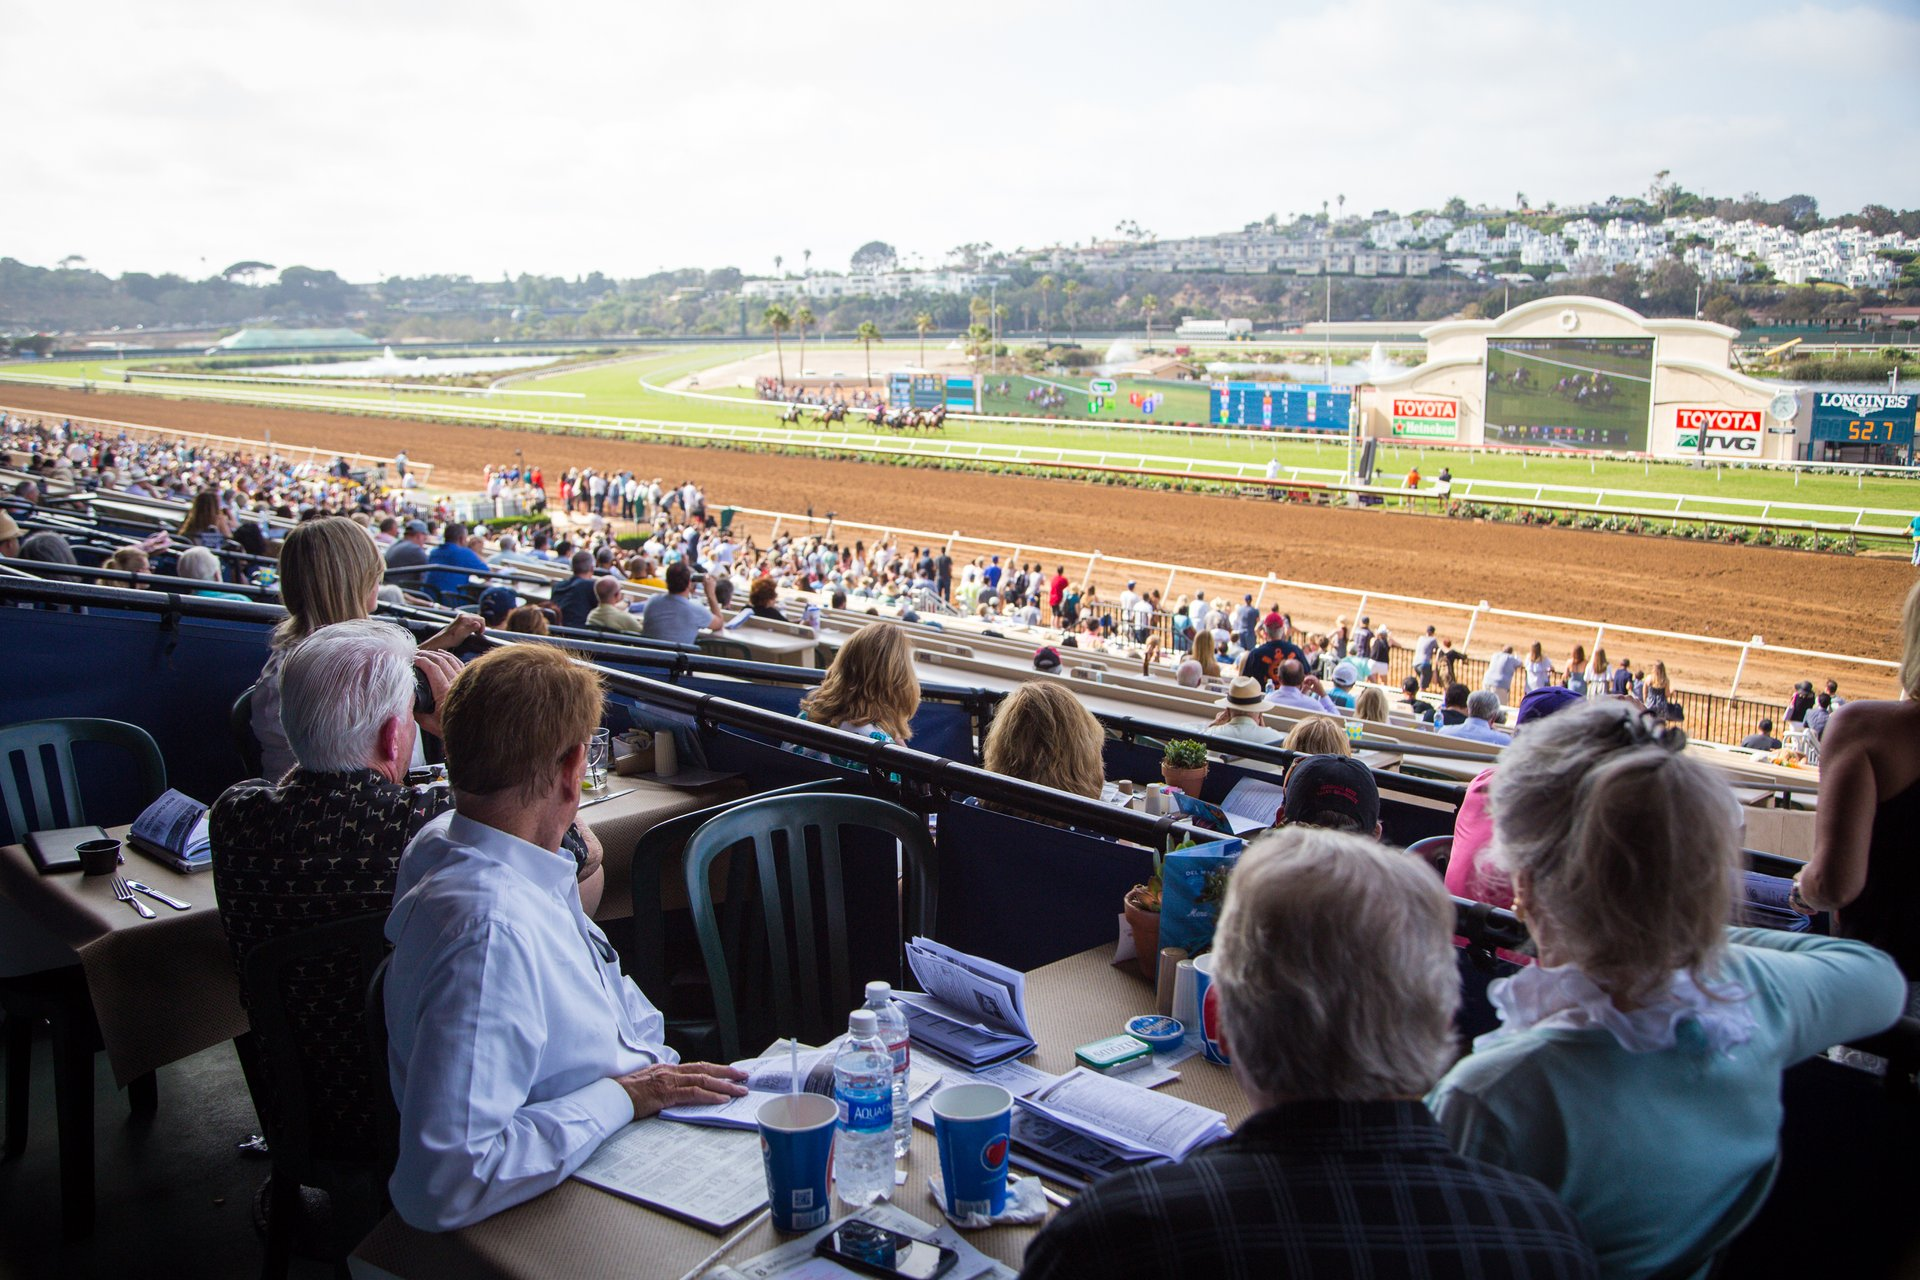 Best time to see Del Mar Racing Season in San Diego 2020